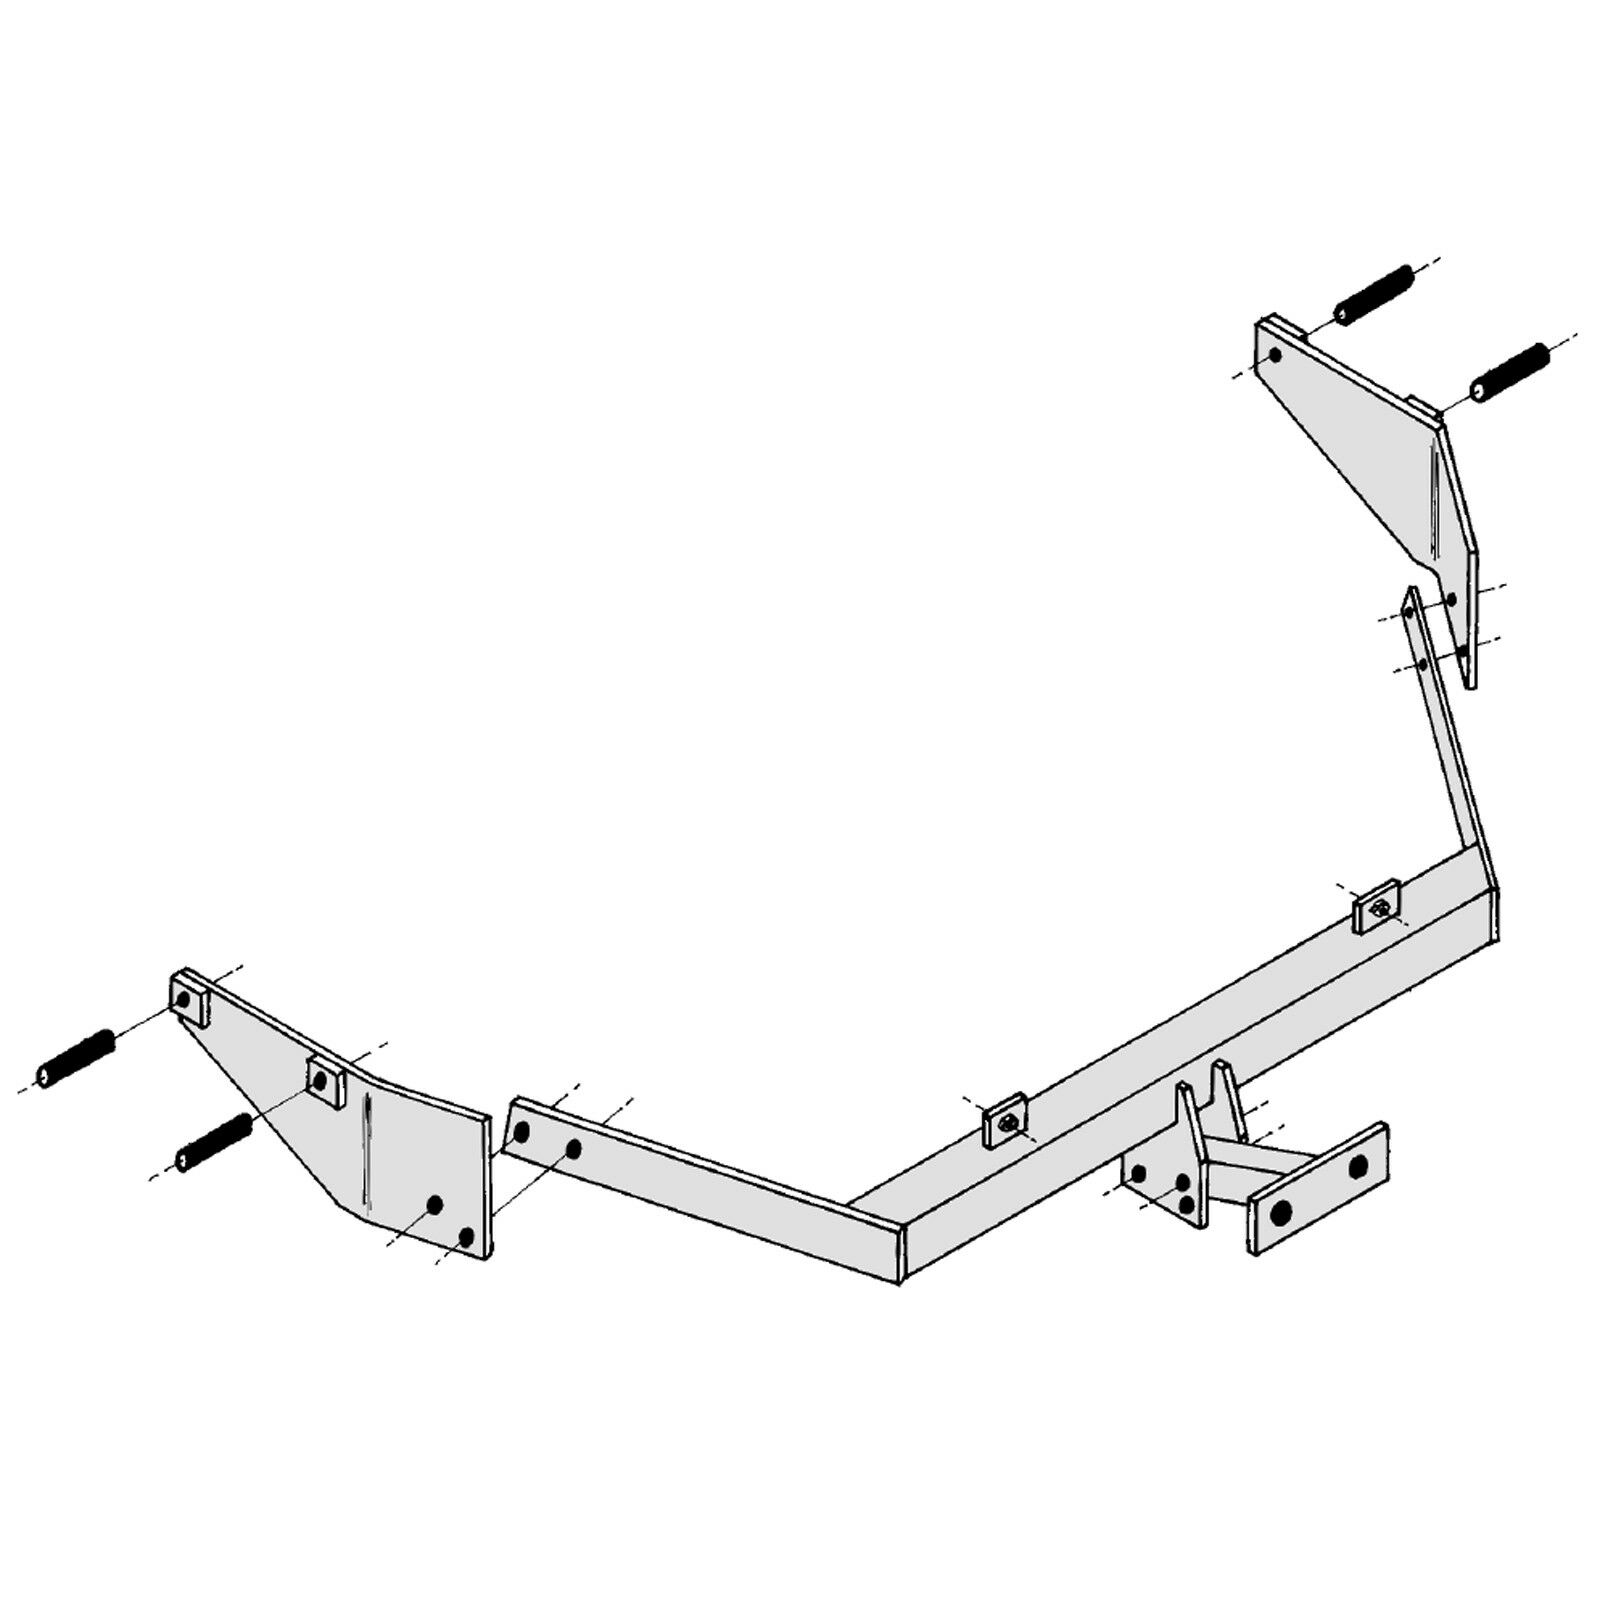 hight resolution of details about towbar for citroen berlingo multispace 1998 2008 flange tow bar